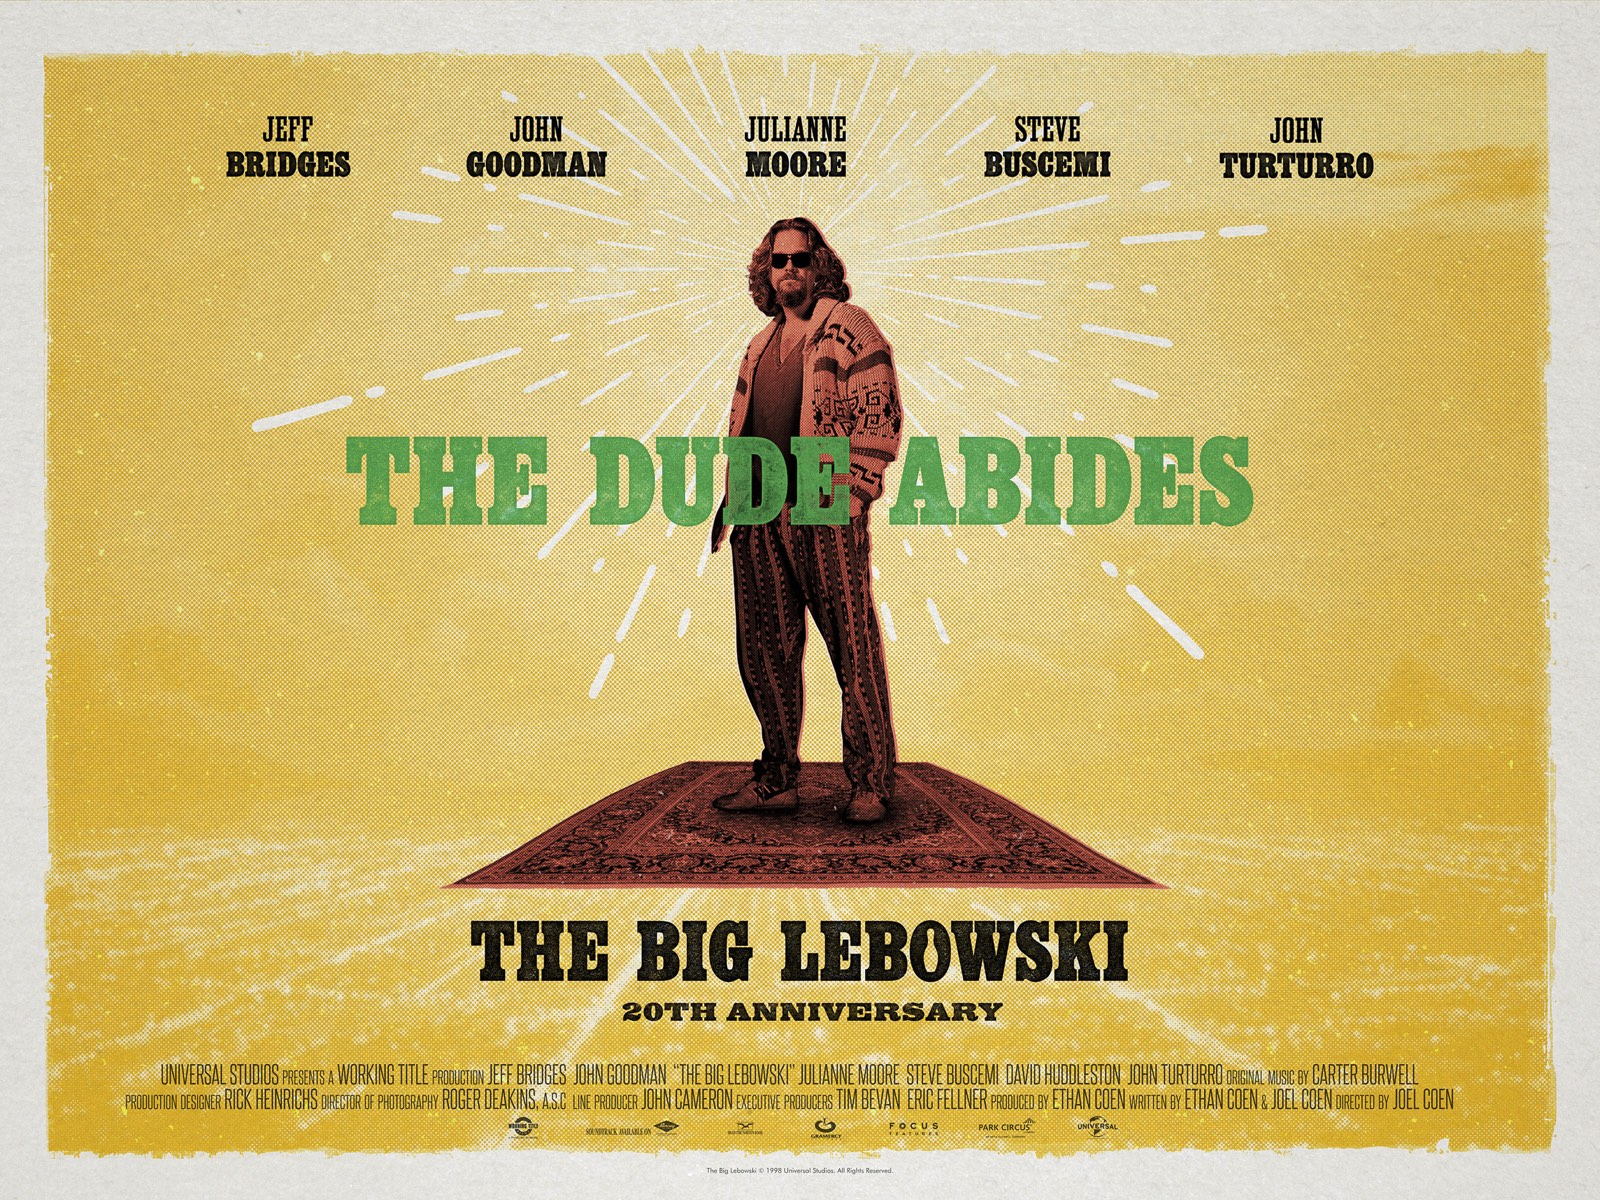 The Big Lebowski re-release poster